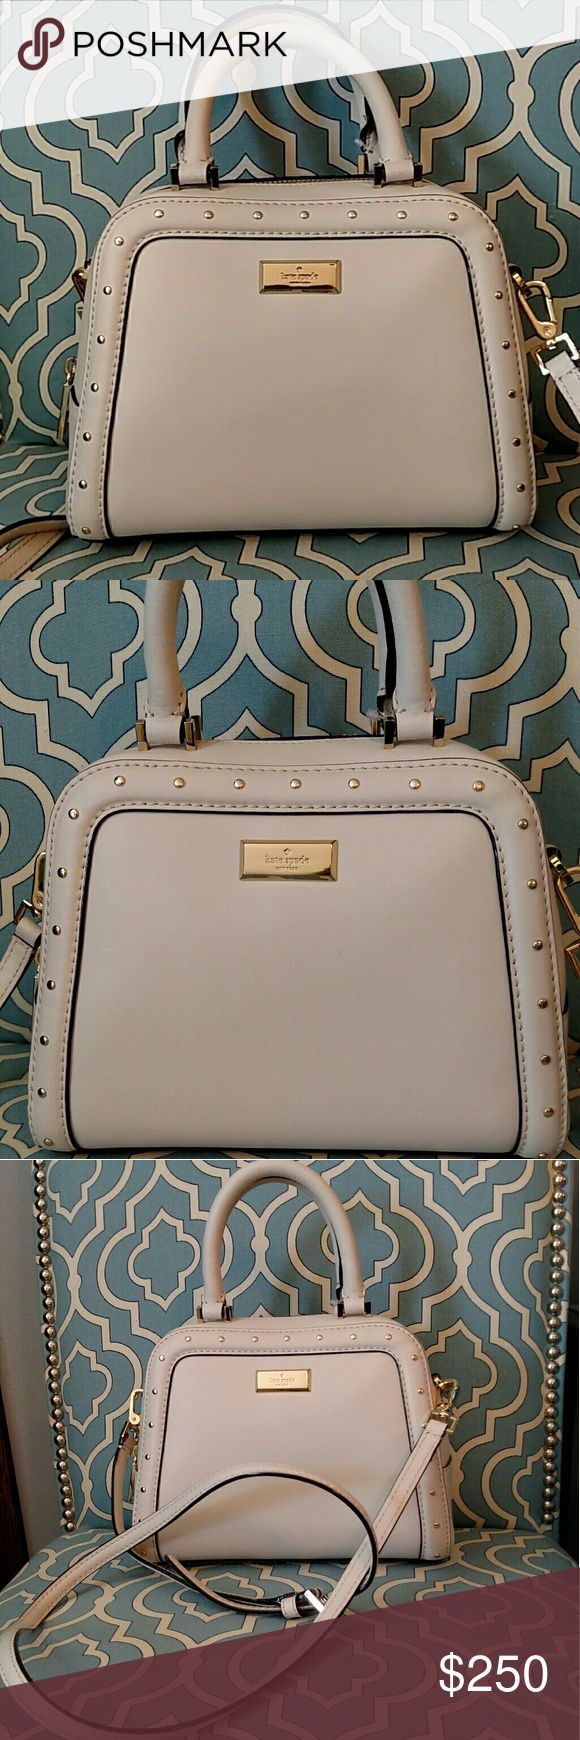 Kate Spade helena street small rocki pebble color Brand New Kate Spade helena street small rocki purse. Never used. Pebble color. Comes with shoulder strap but no dust bag. Make me an offer! kate spade Bags